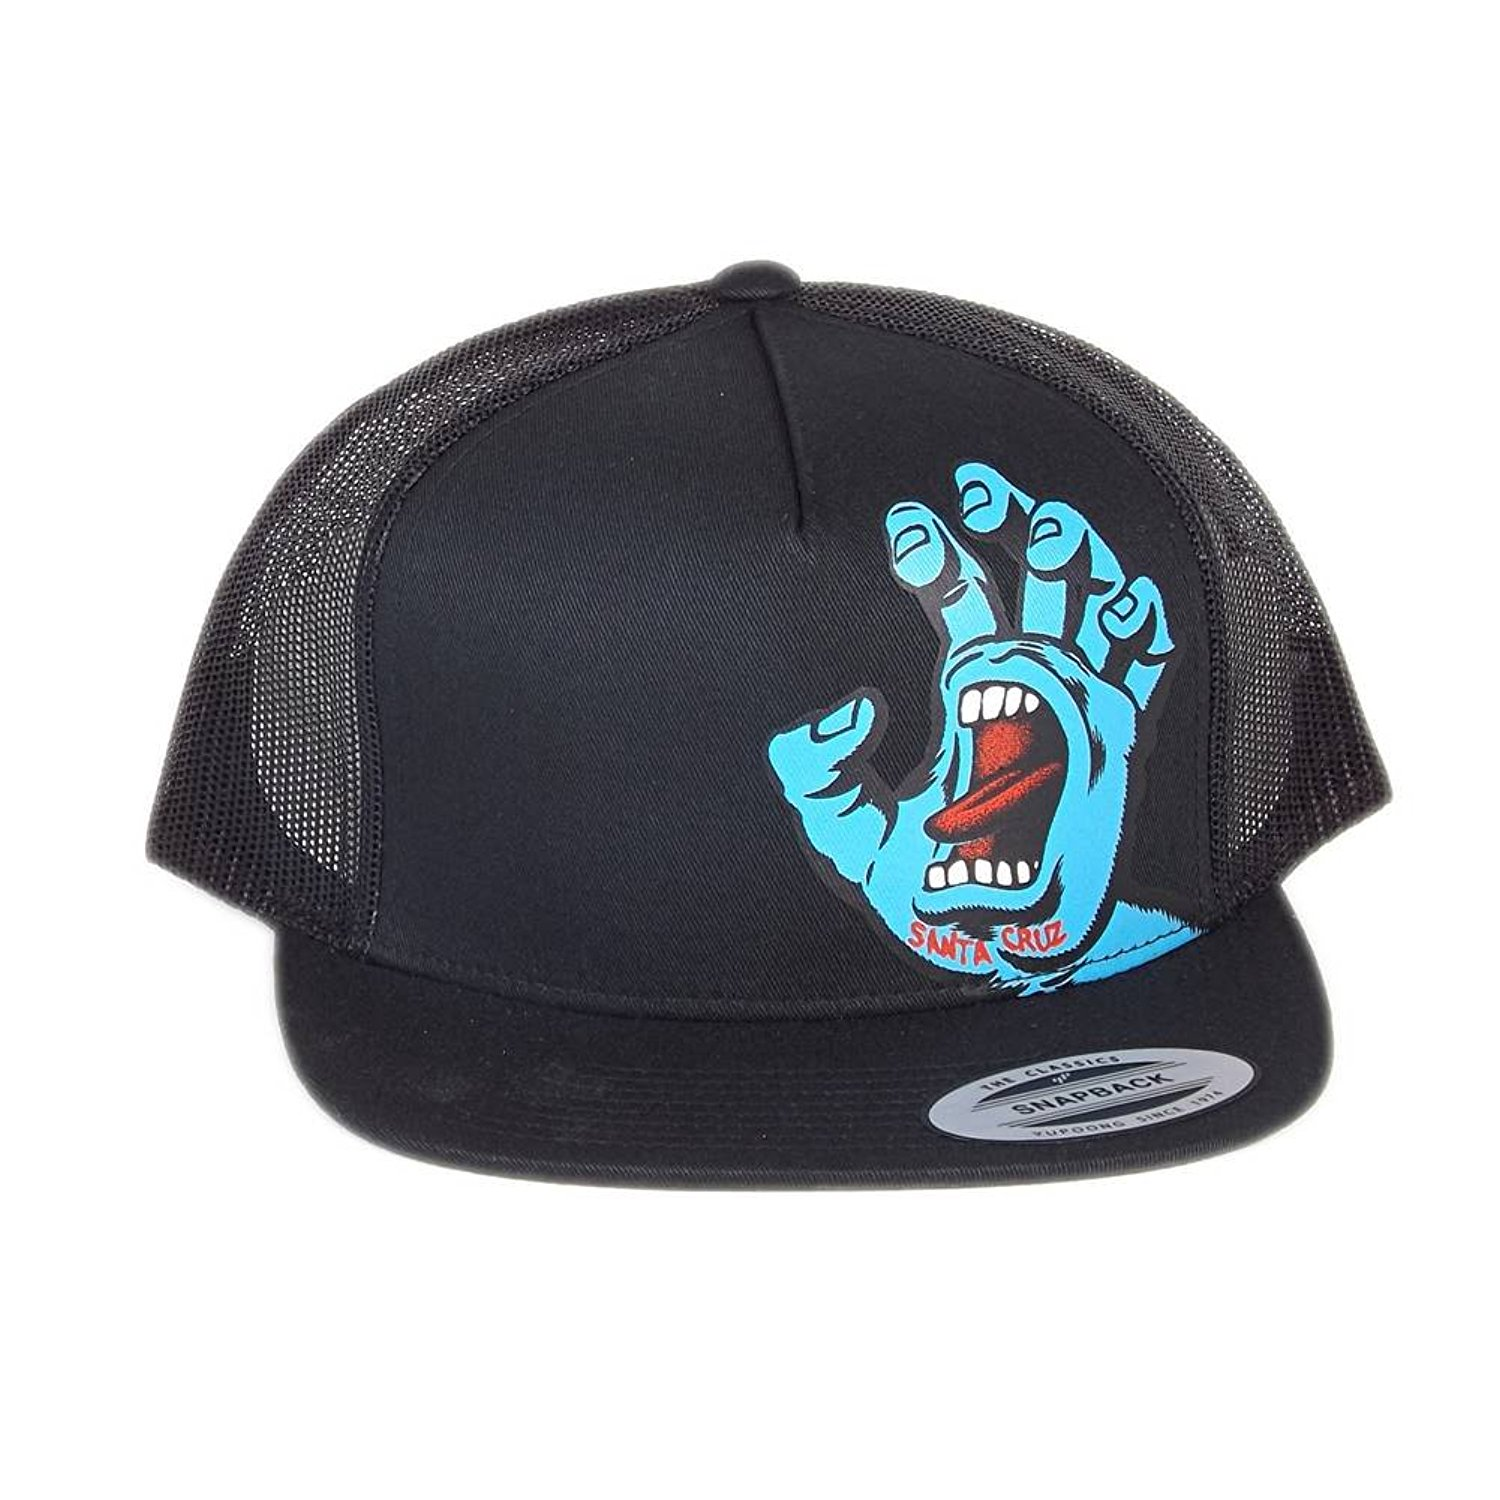 495f437c5c3ec Get Quotations · Santa Cruz Black Screaming Hand Snapback Cap (Default